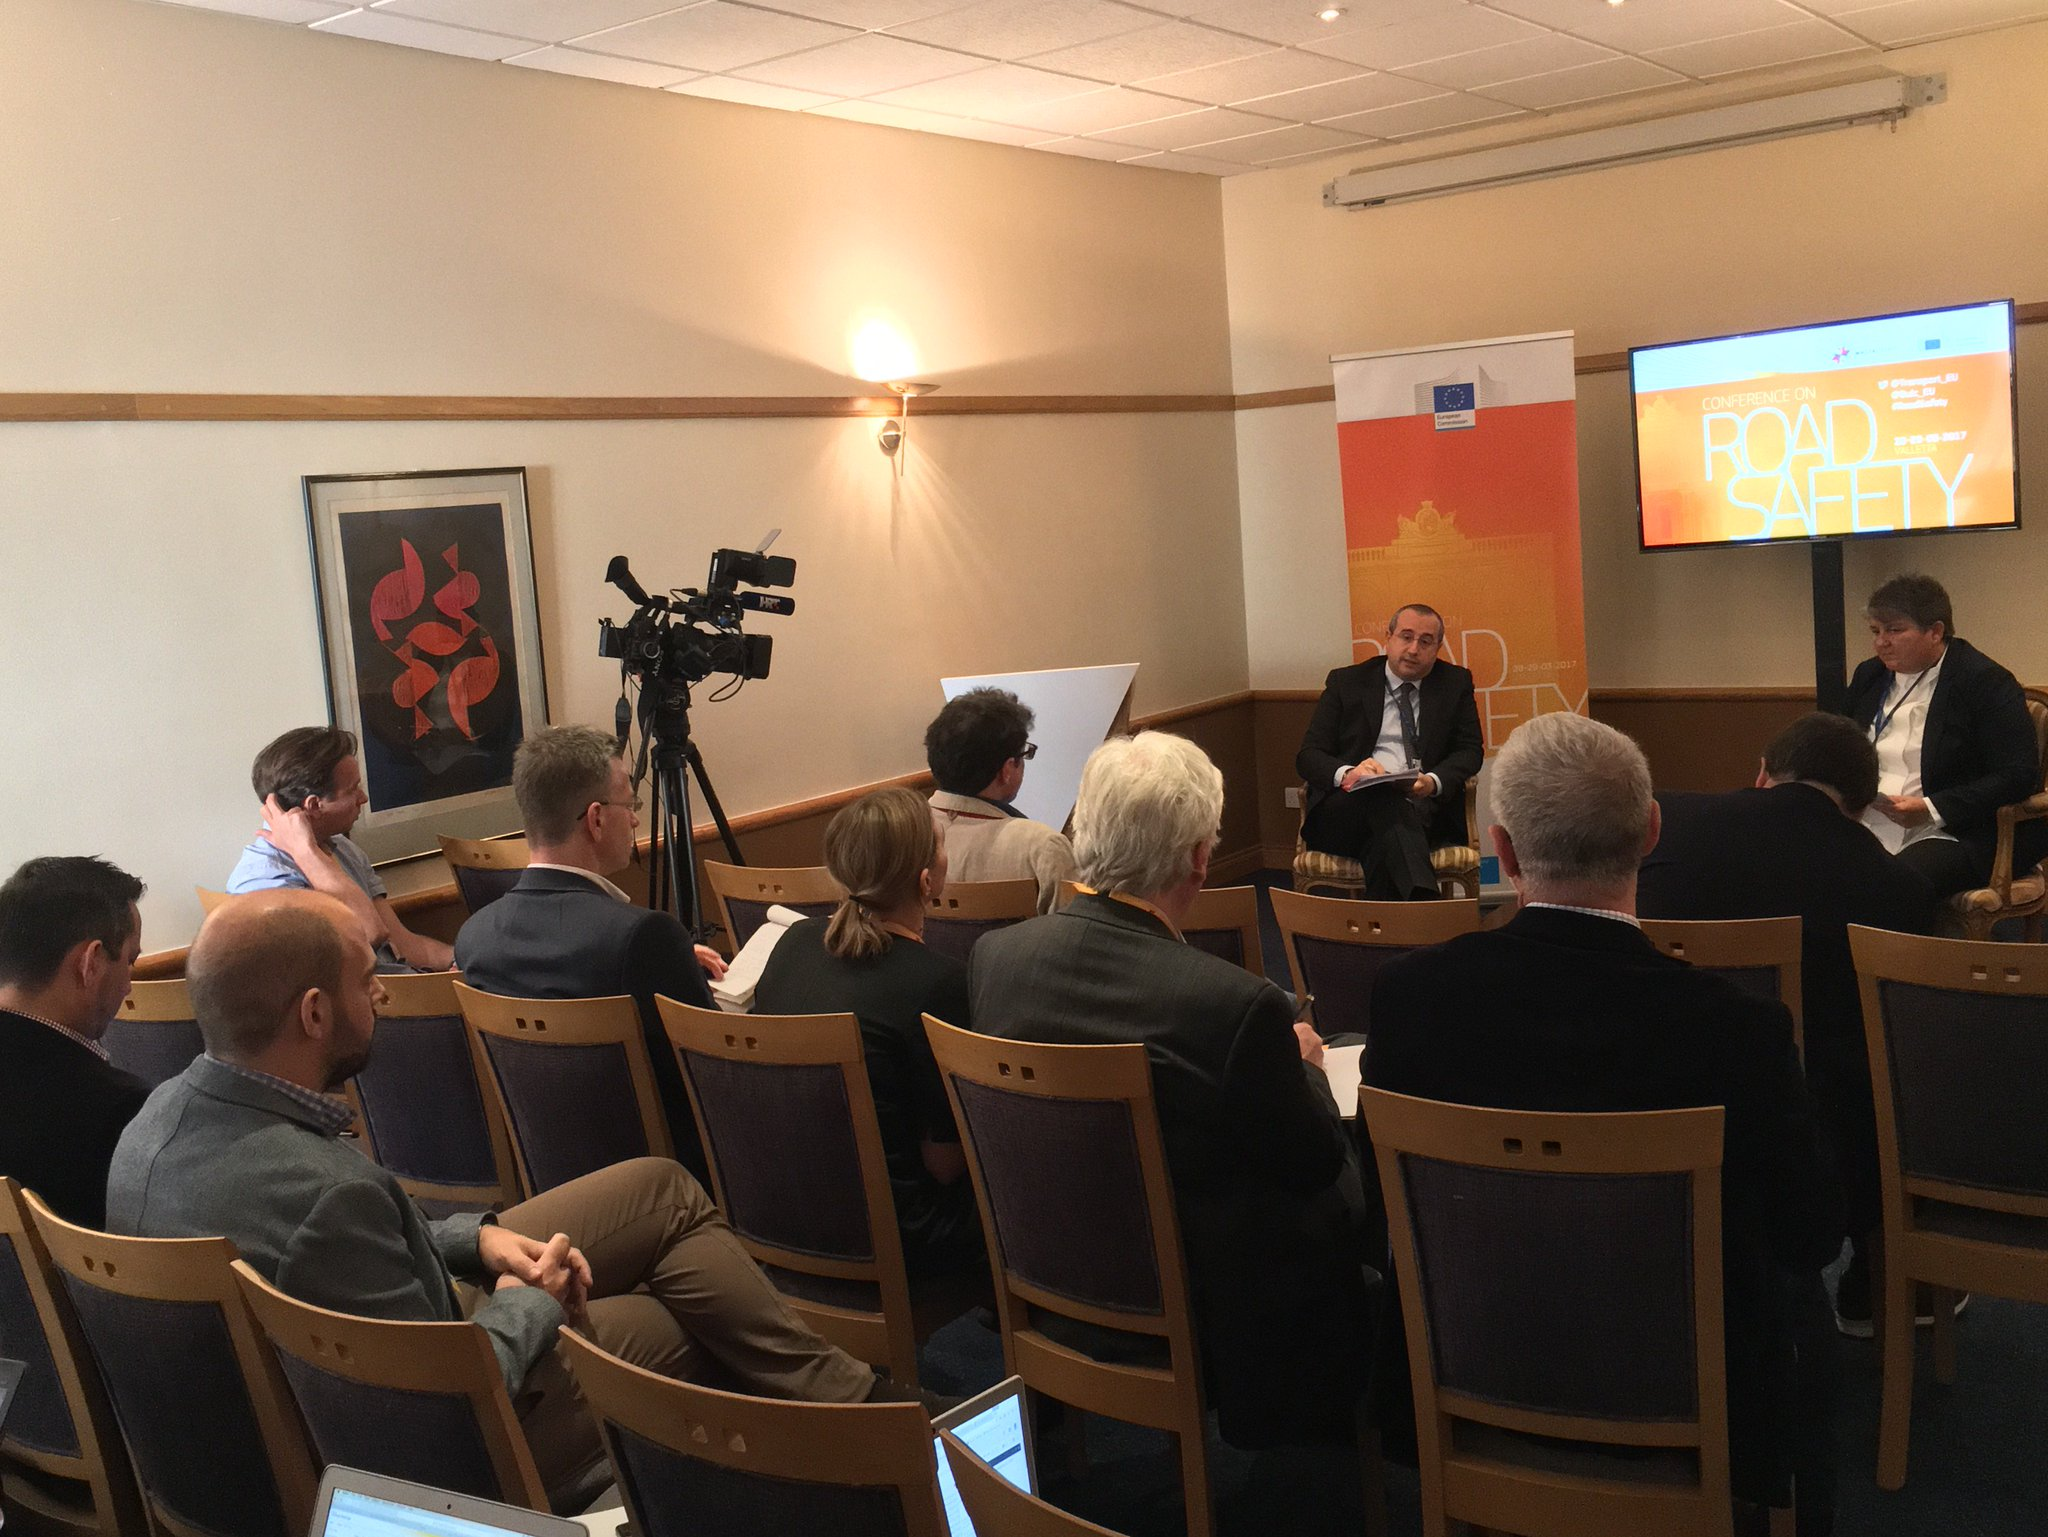 Press briefing by Antonio Avenoso #ETSC and @purdie409 of @TISPOLorg at Valletta #RoadSafety stakeholder conference. #eu2017mt https://t.co/nVikhf27pC